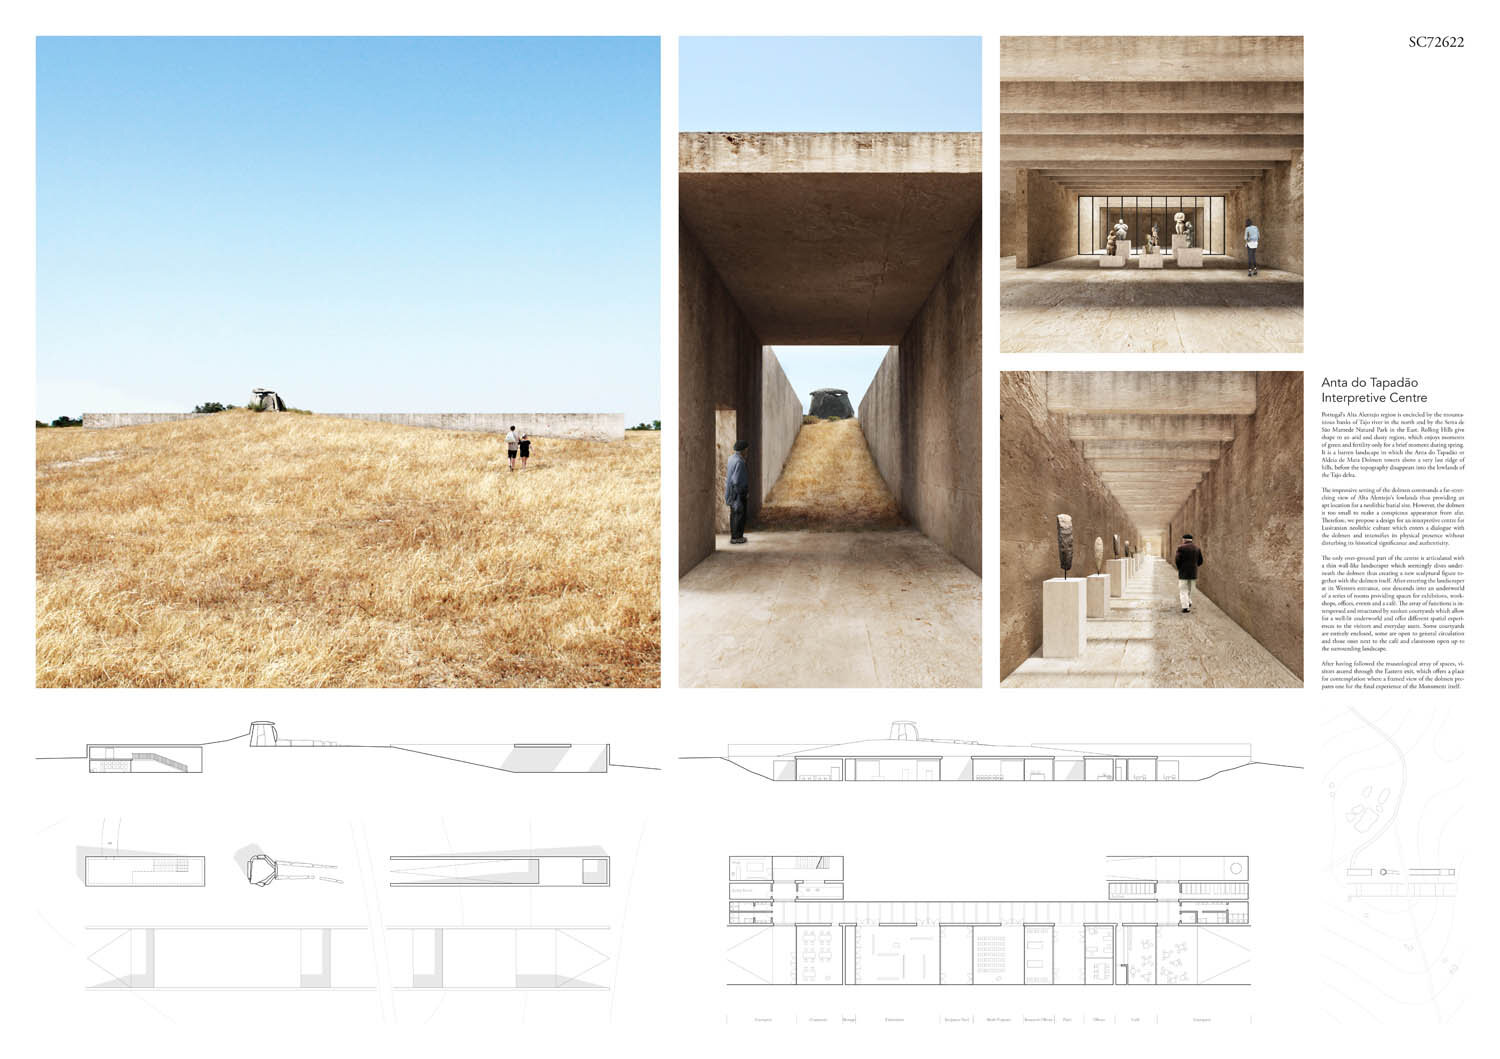 Anta do Tapadao Interpretive Centre winning proposal